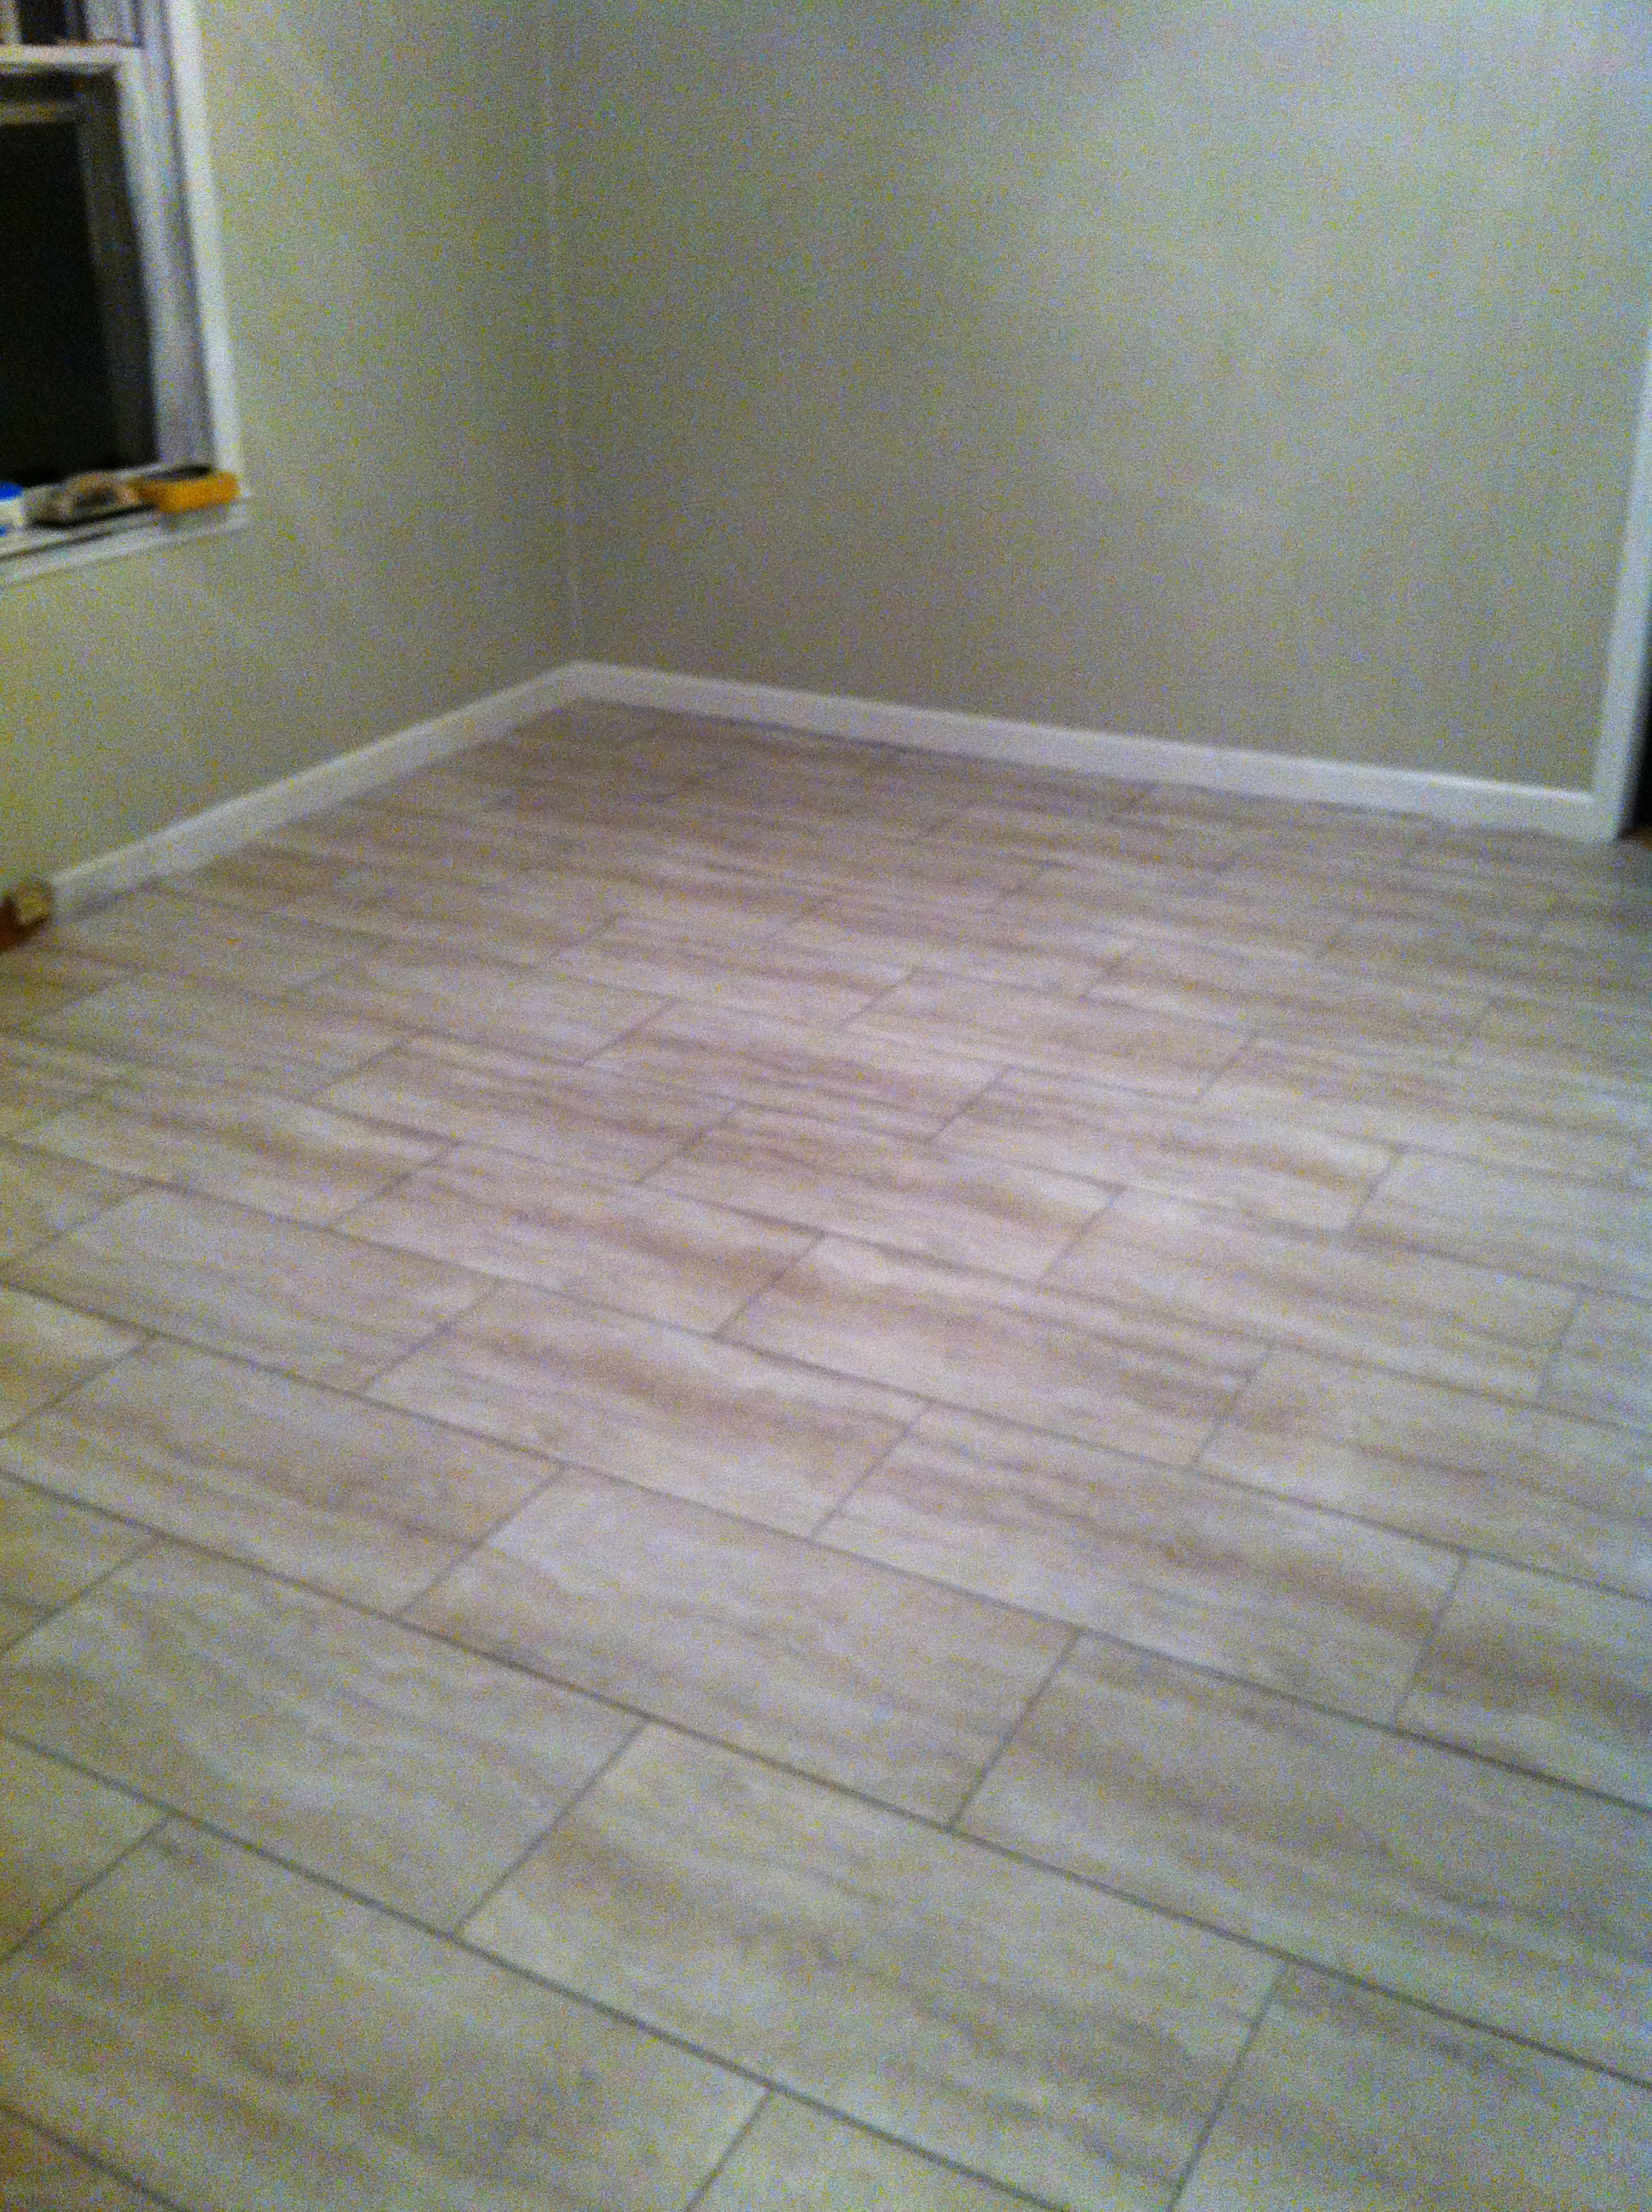 Groutable vinyl tile walkthecreativepath for Stick on linoleum tiles